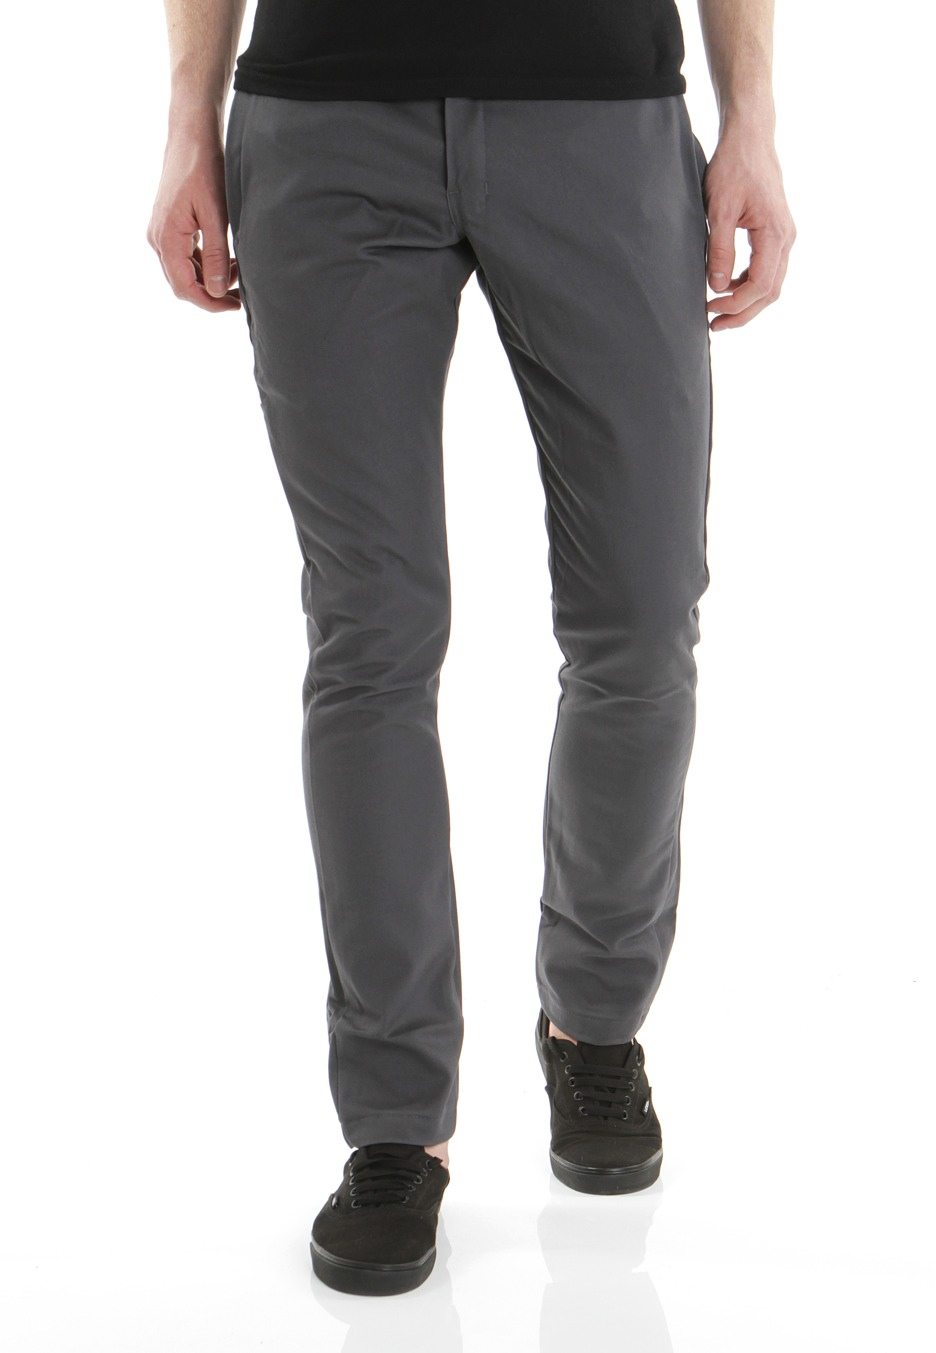 Gray Pants And Brown Shoes For Women